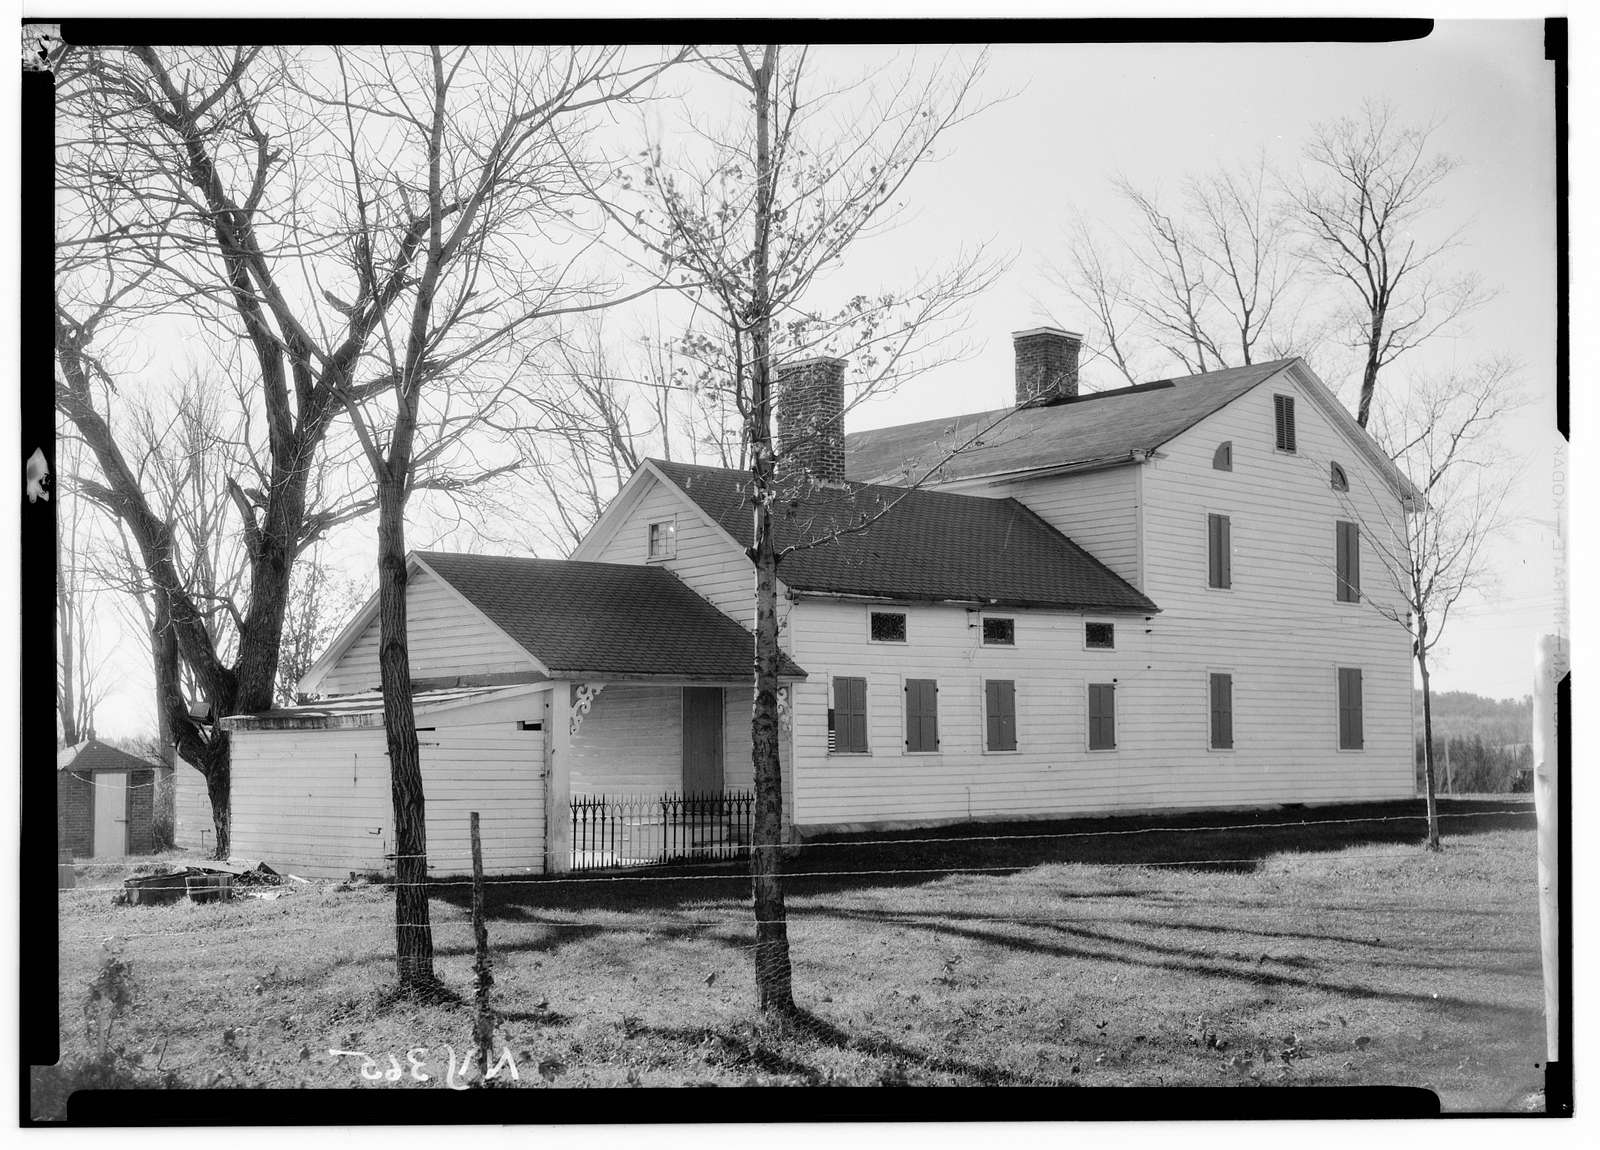 Rice Homestead, Route 30, Mayfield, Fulton County, NY